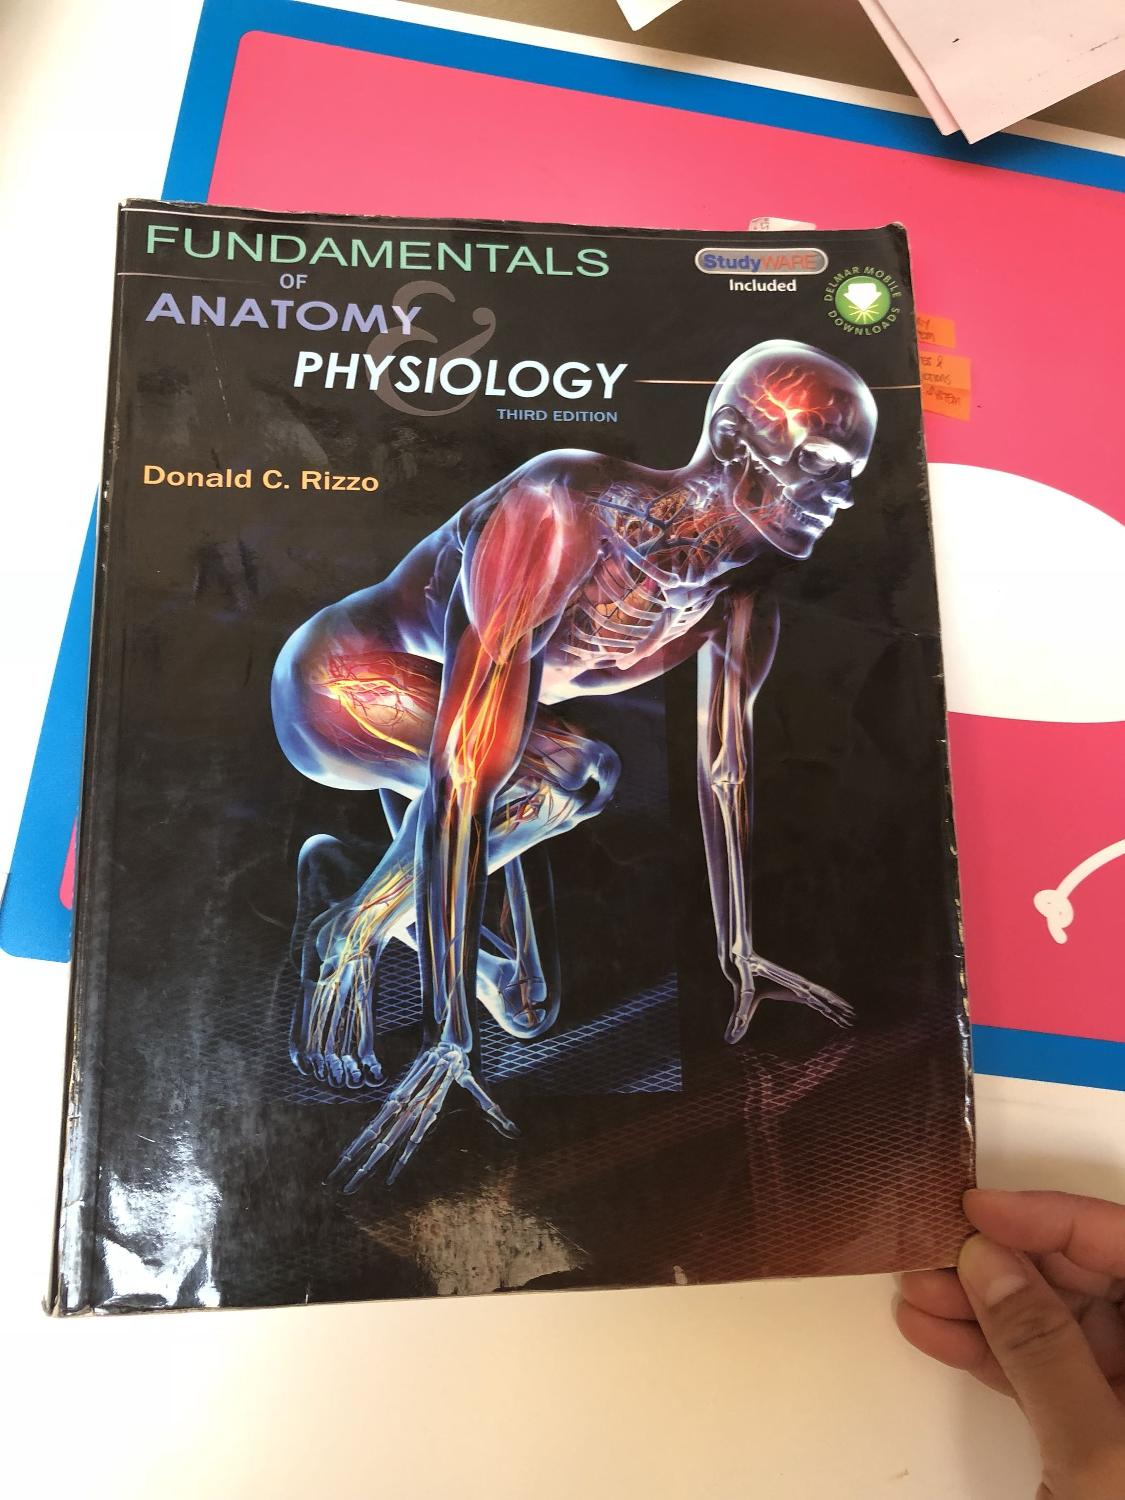 Best Fundamentals Of Anatomy Physiology 3rd Edition. for sale in ...